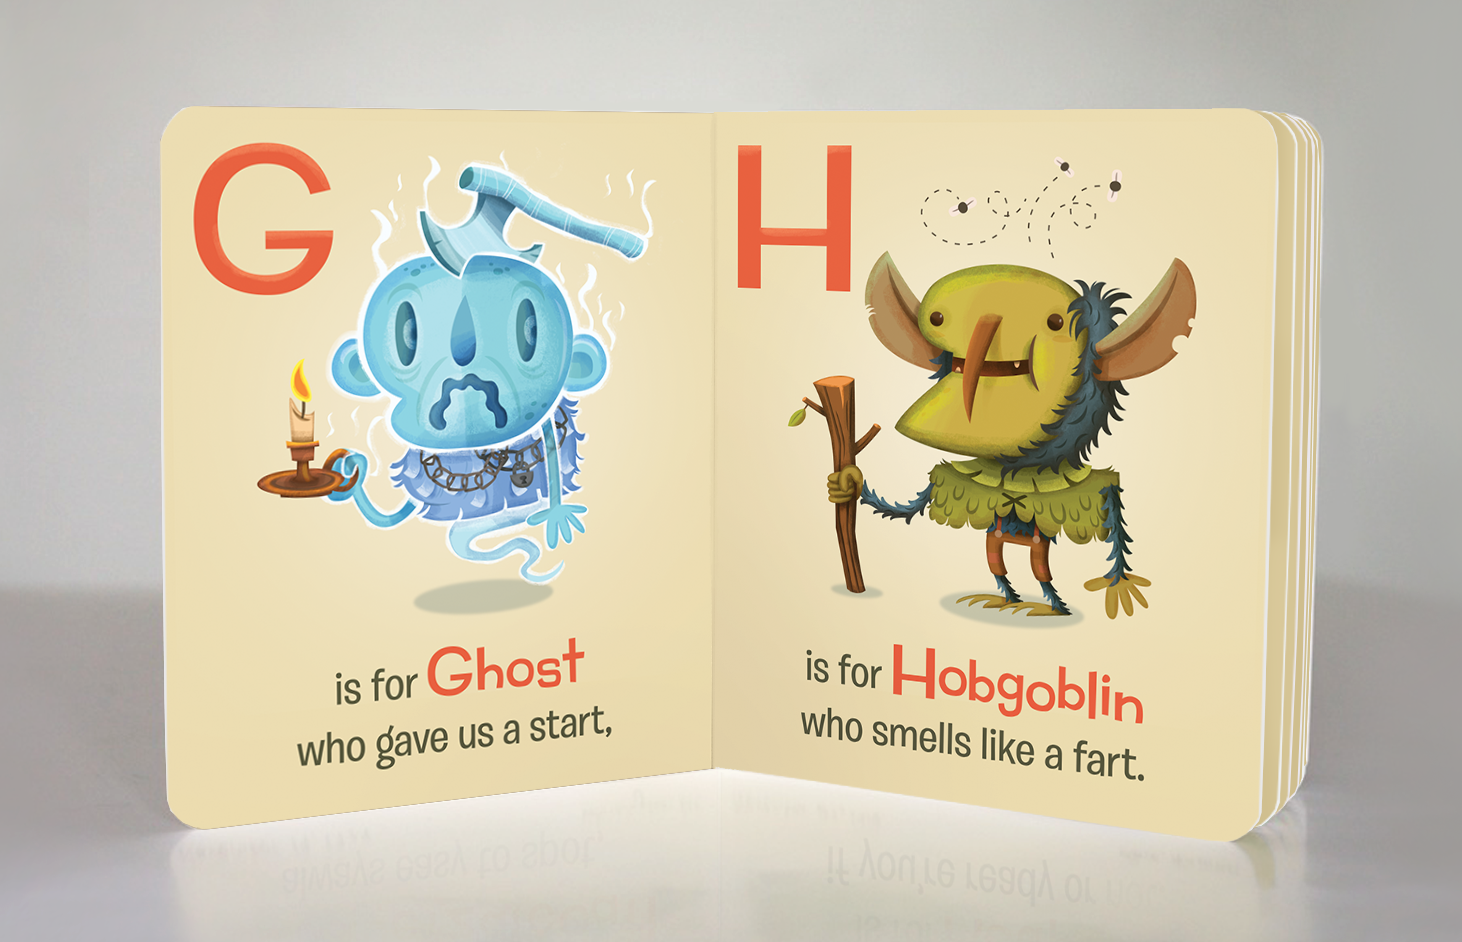 Hobgoblins's first stinky appearance in  Monster ABC . Hazy Dell Press, 2015.